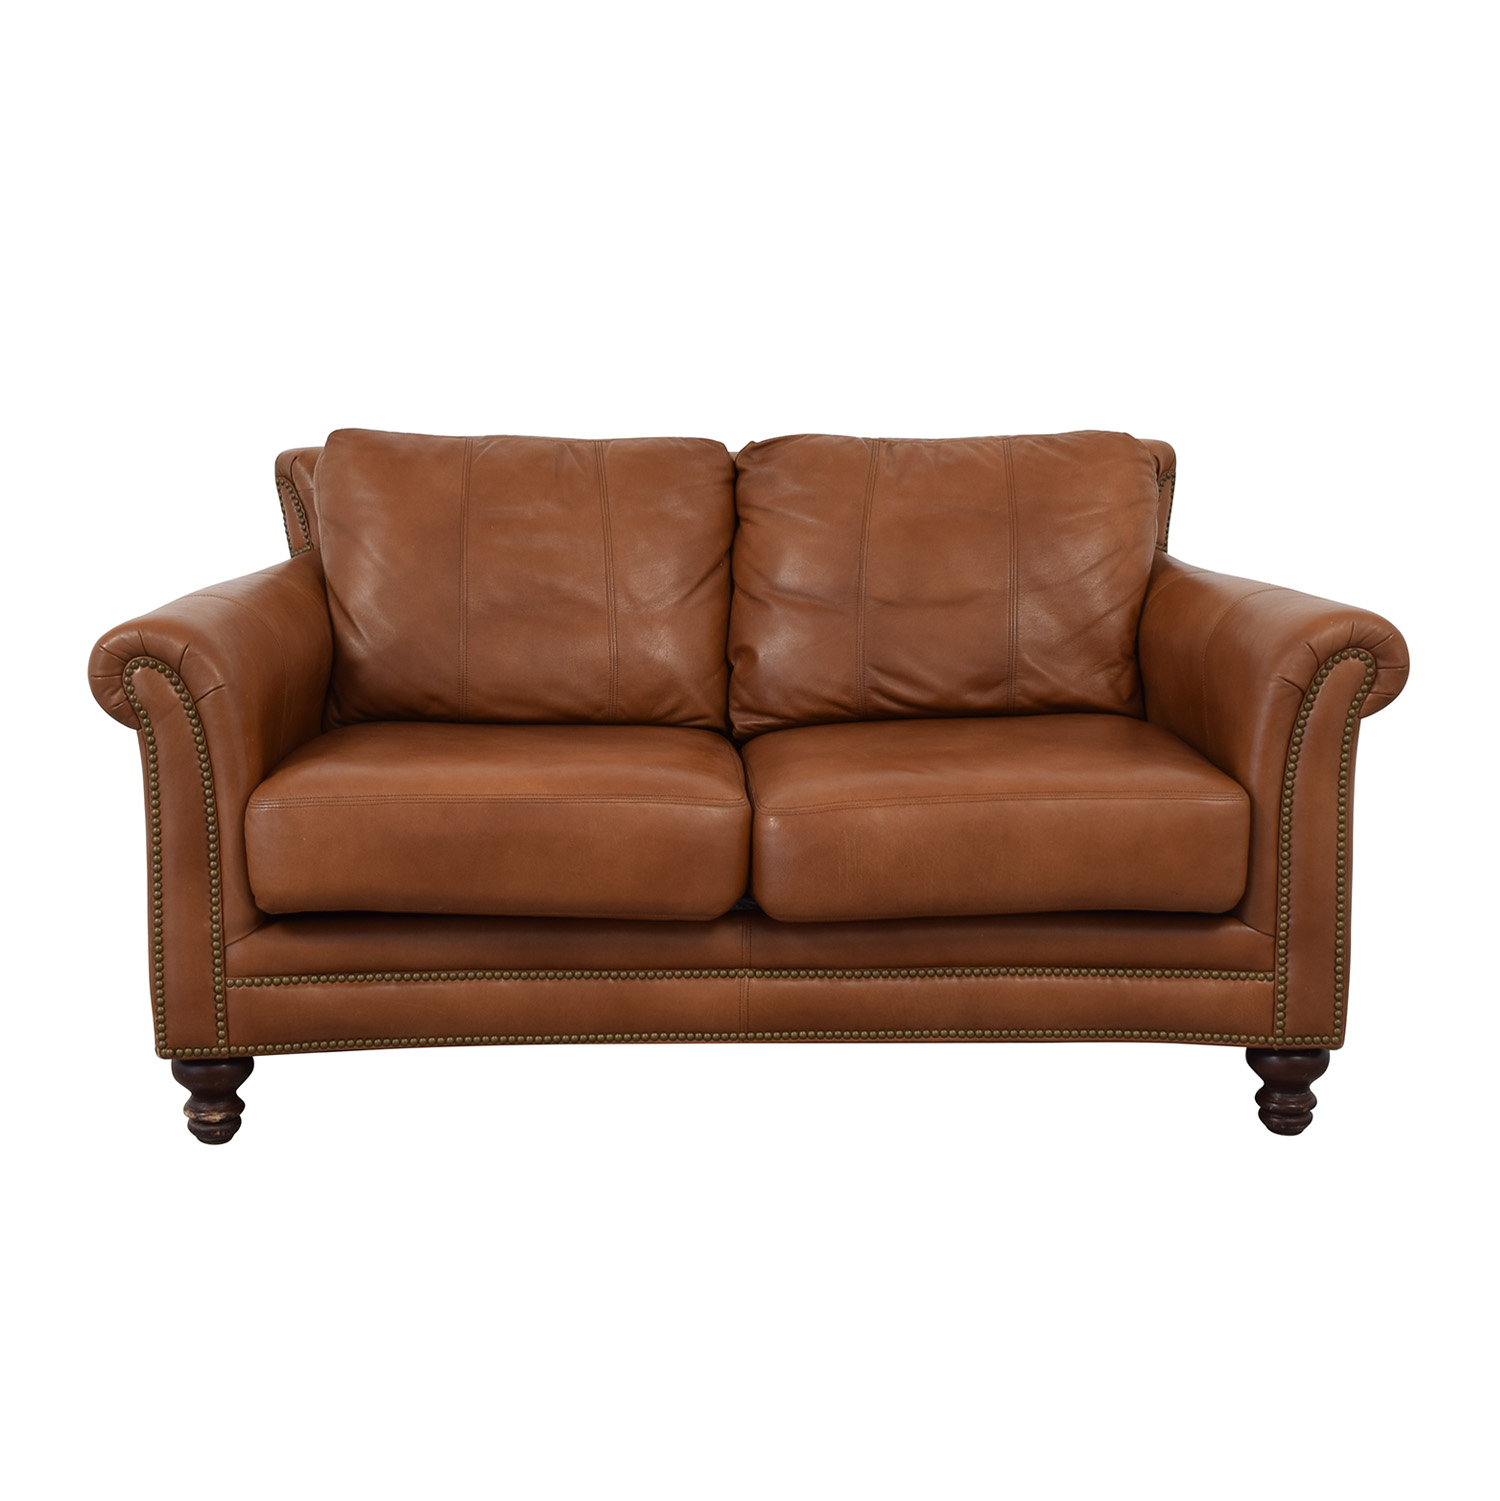 Hooker Furniture Hooker Furniture Bradington Loveseat second hand